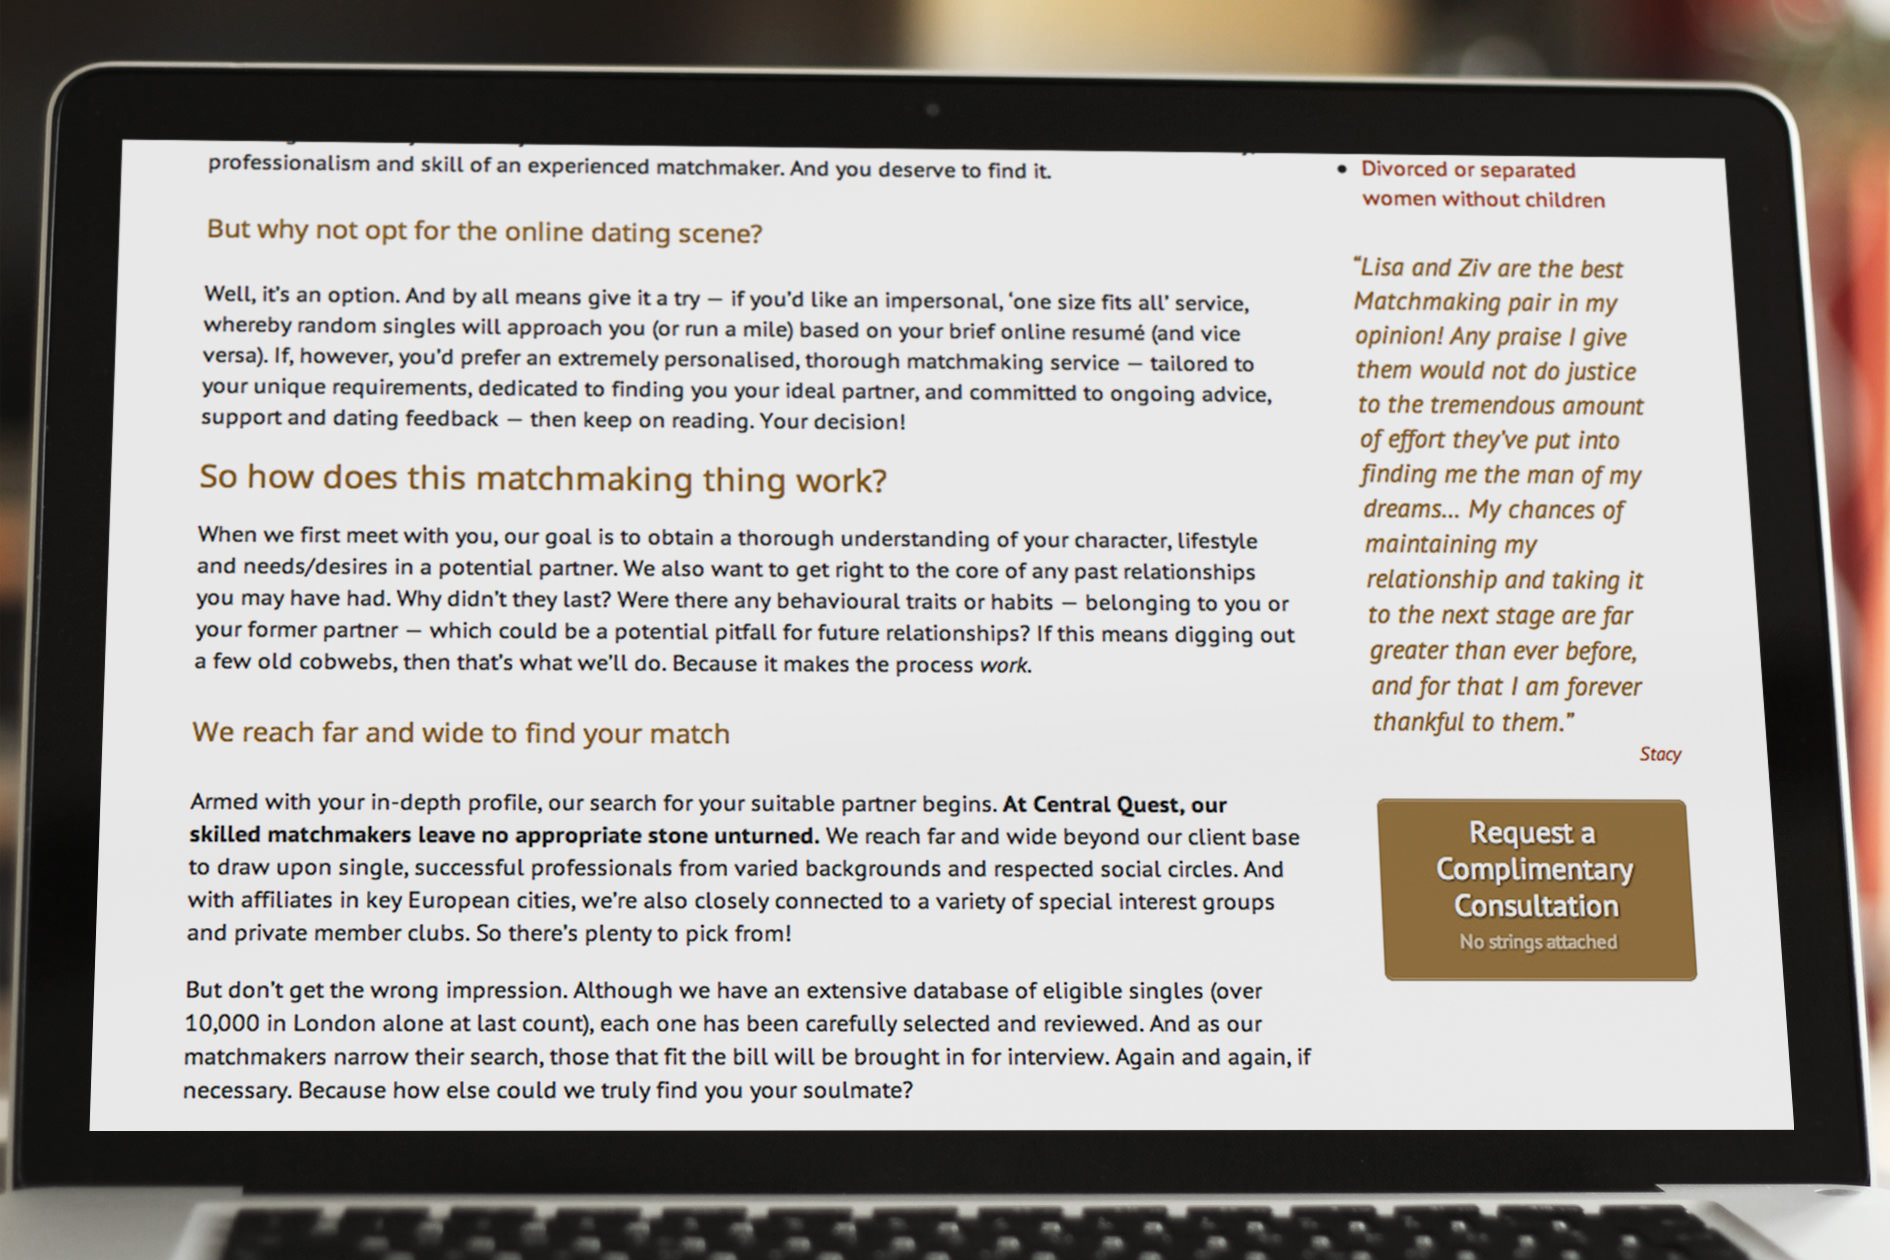 The copy on the membership of the Central Quest website as viewed on an laptop | Tribus Creative – web copywriting services for small business